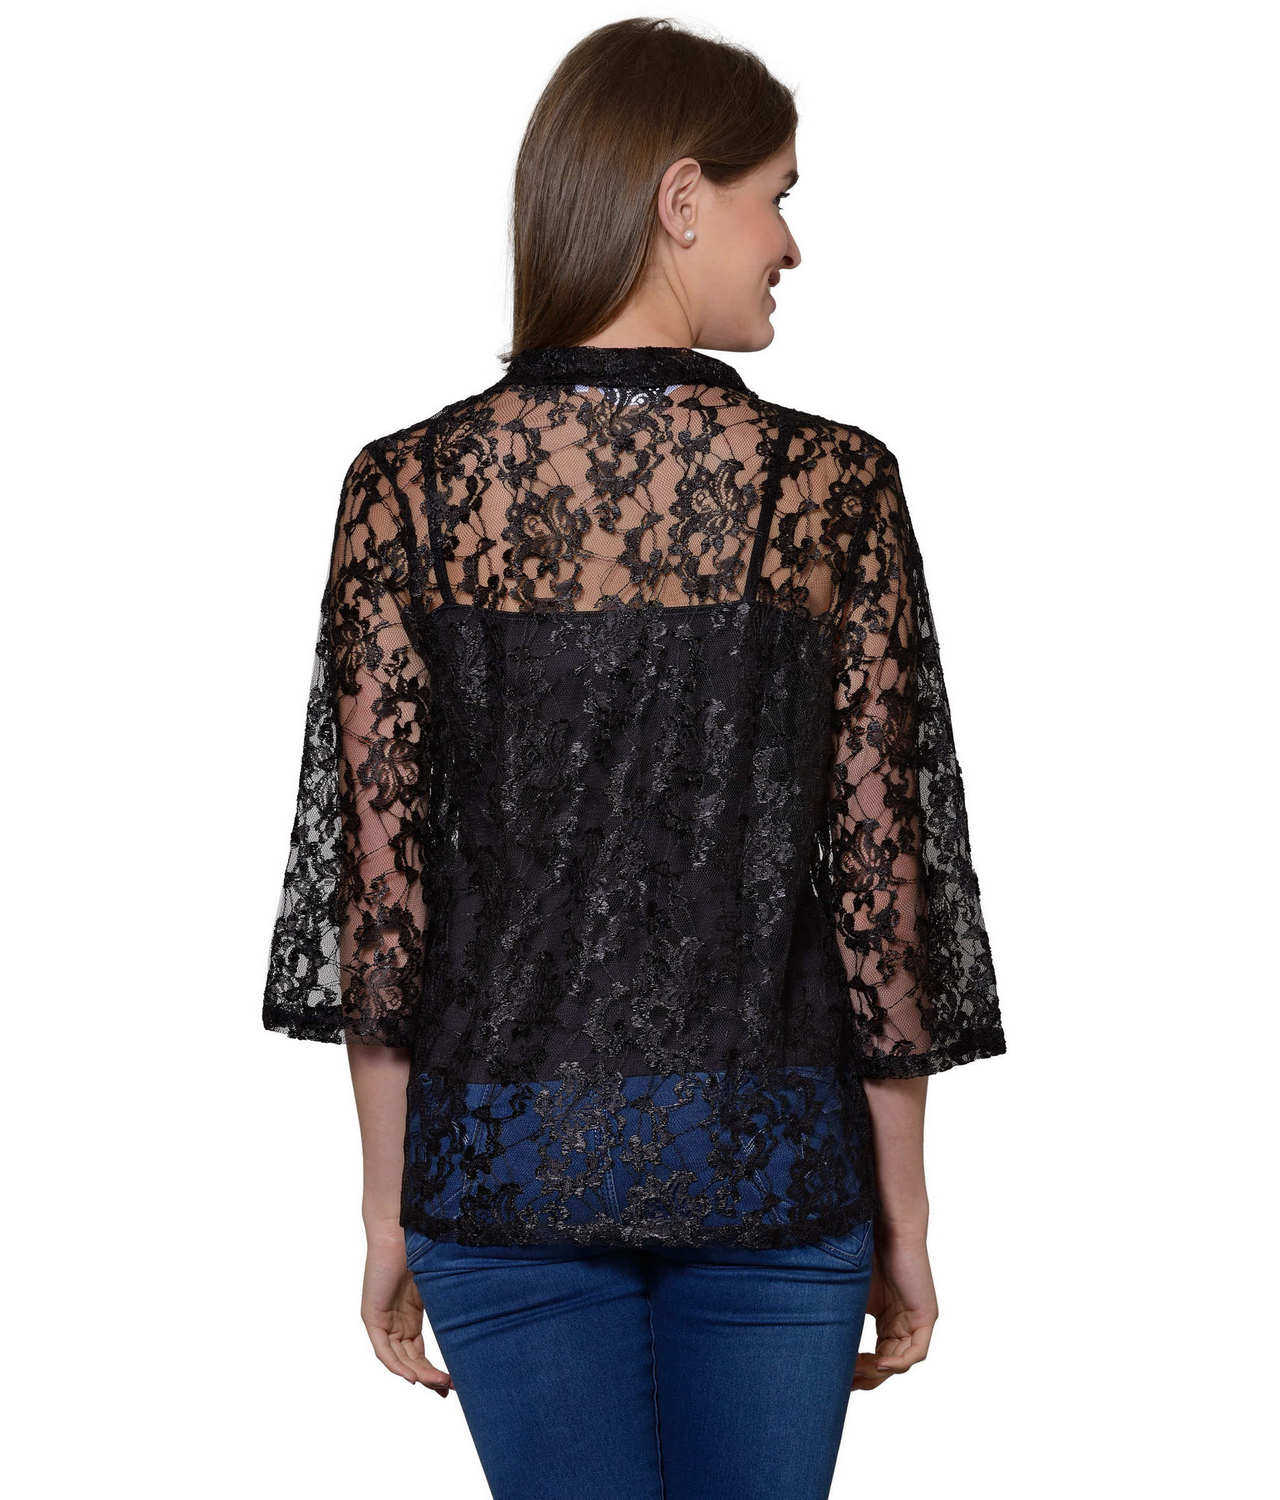 Cami Top with Shrug in Black